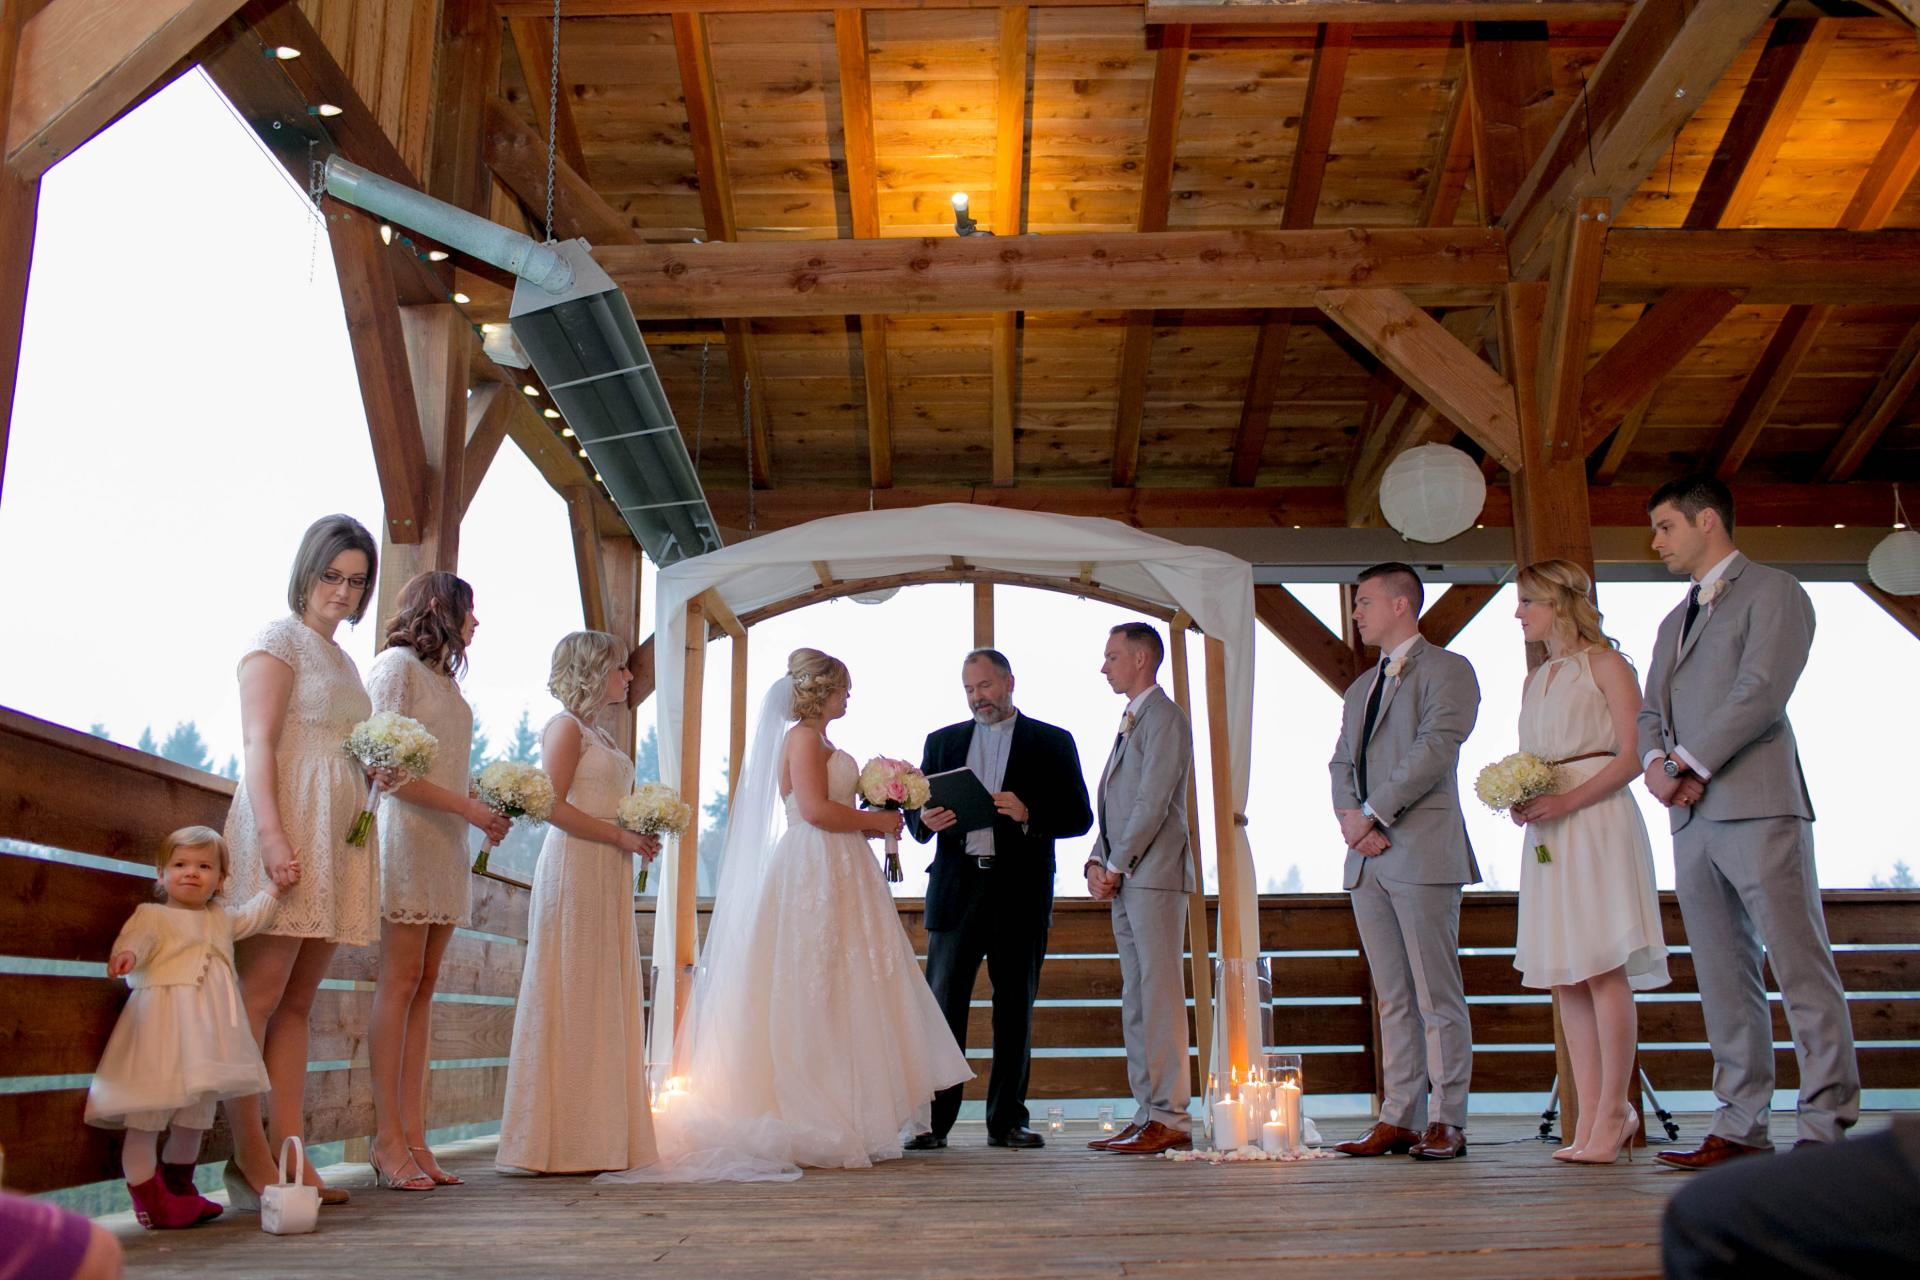 Seasonal Weddings Merridale Cidery Amp Distillery